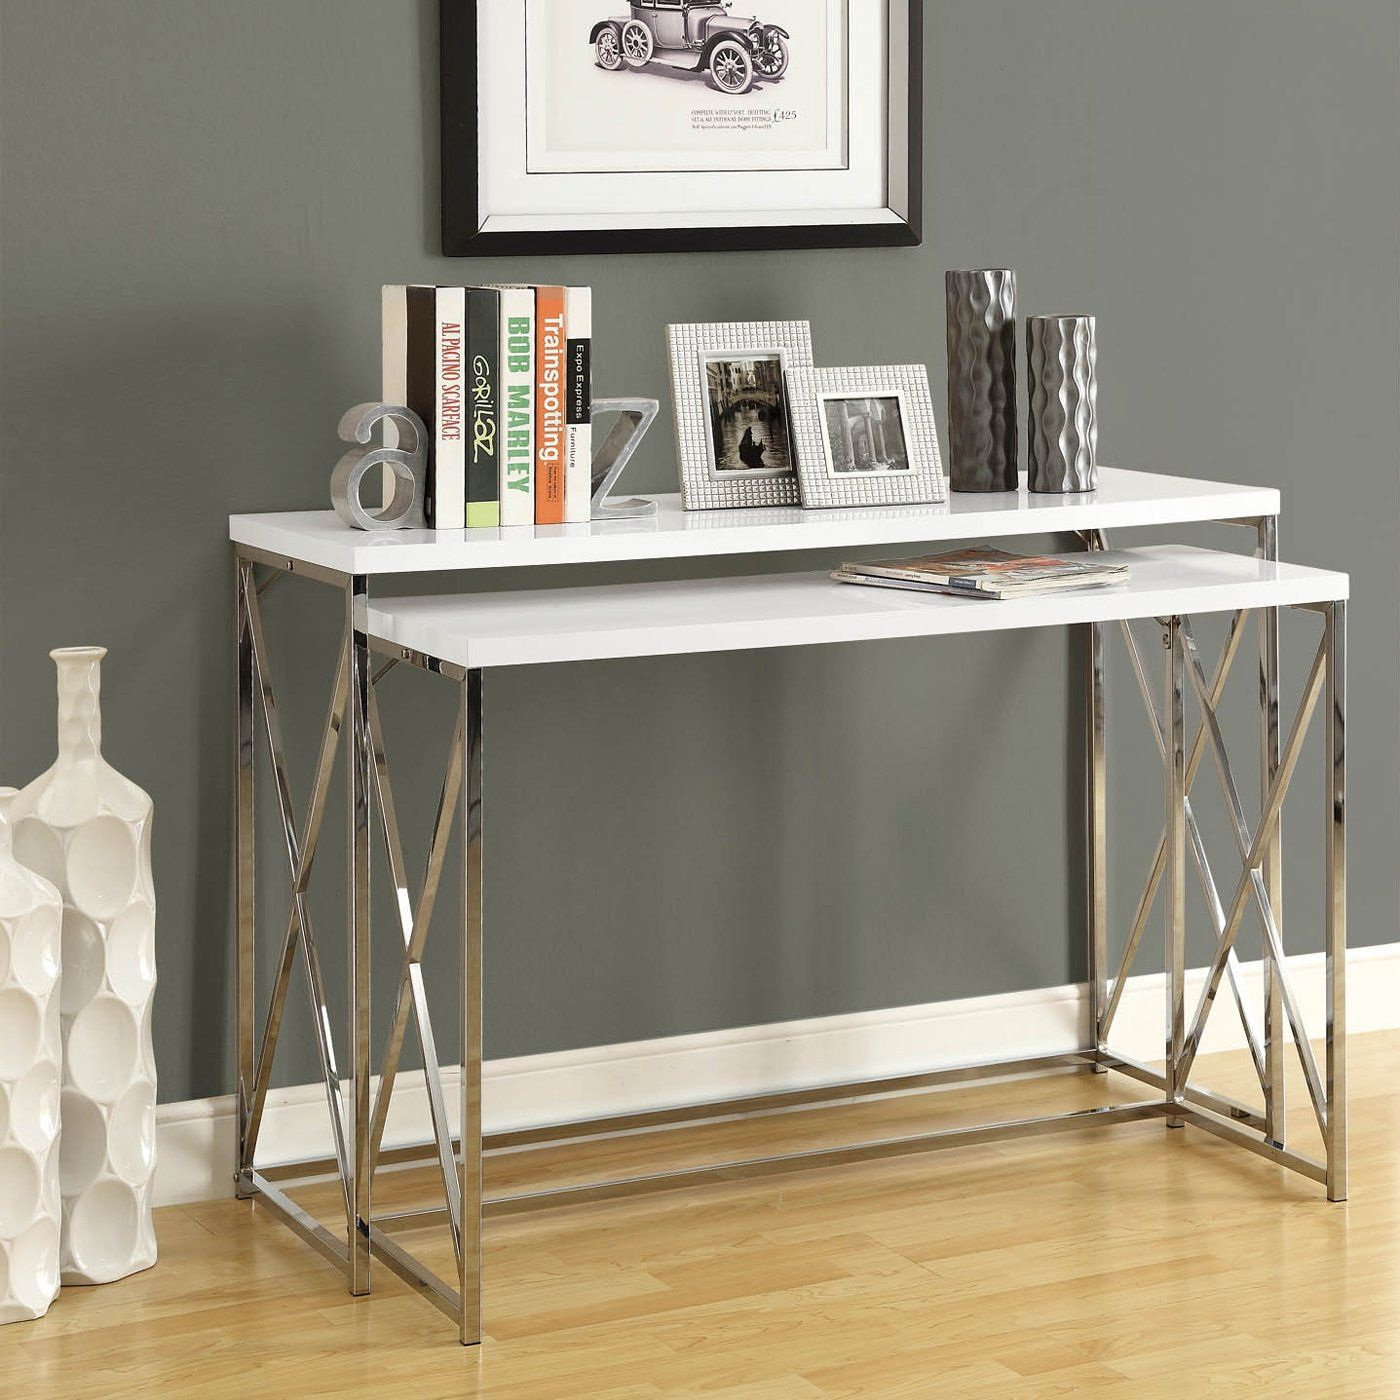 monarch glossy white and chrome  piece console table set  i . monarch specialties i  two piece nesting console table set